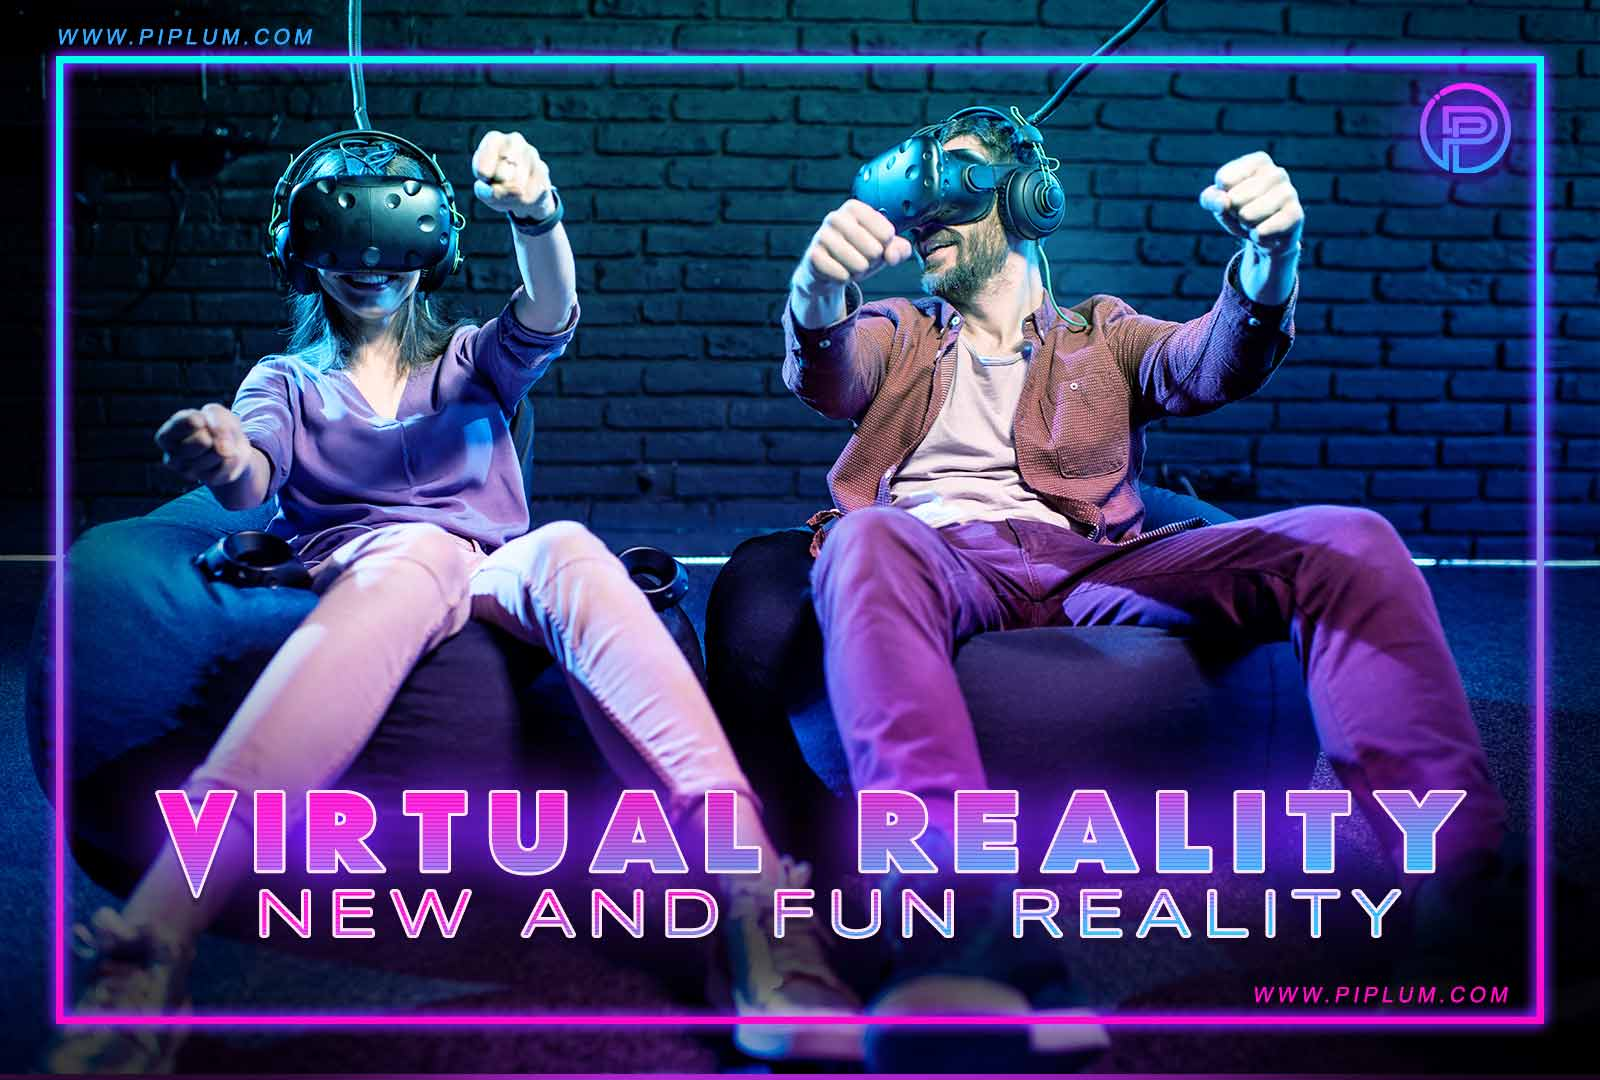 Virtual reality is a new and fun reality. Gaming quote for true gamers.